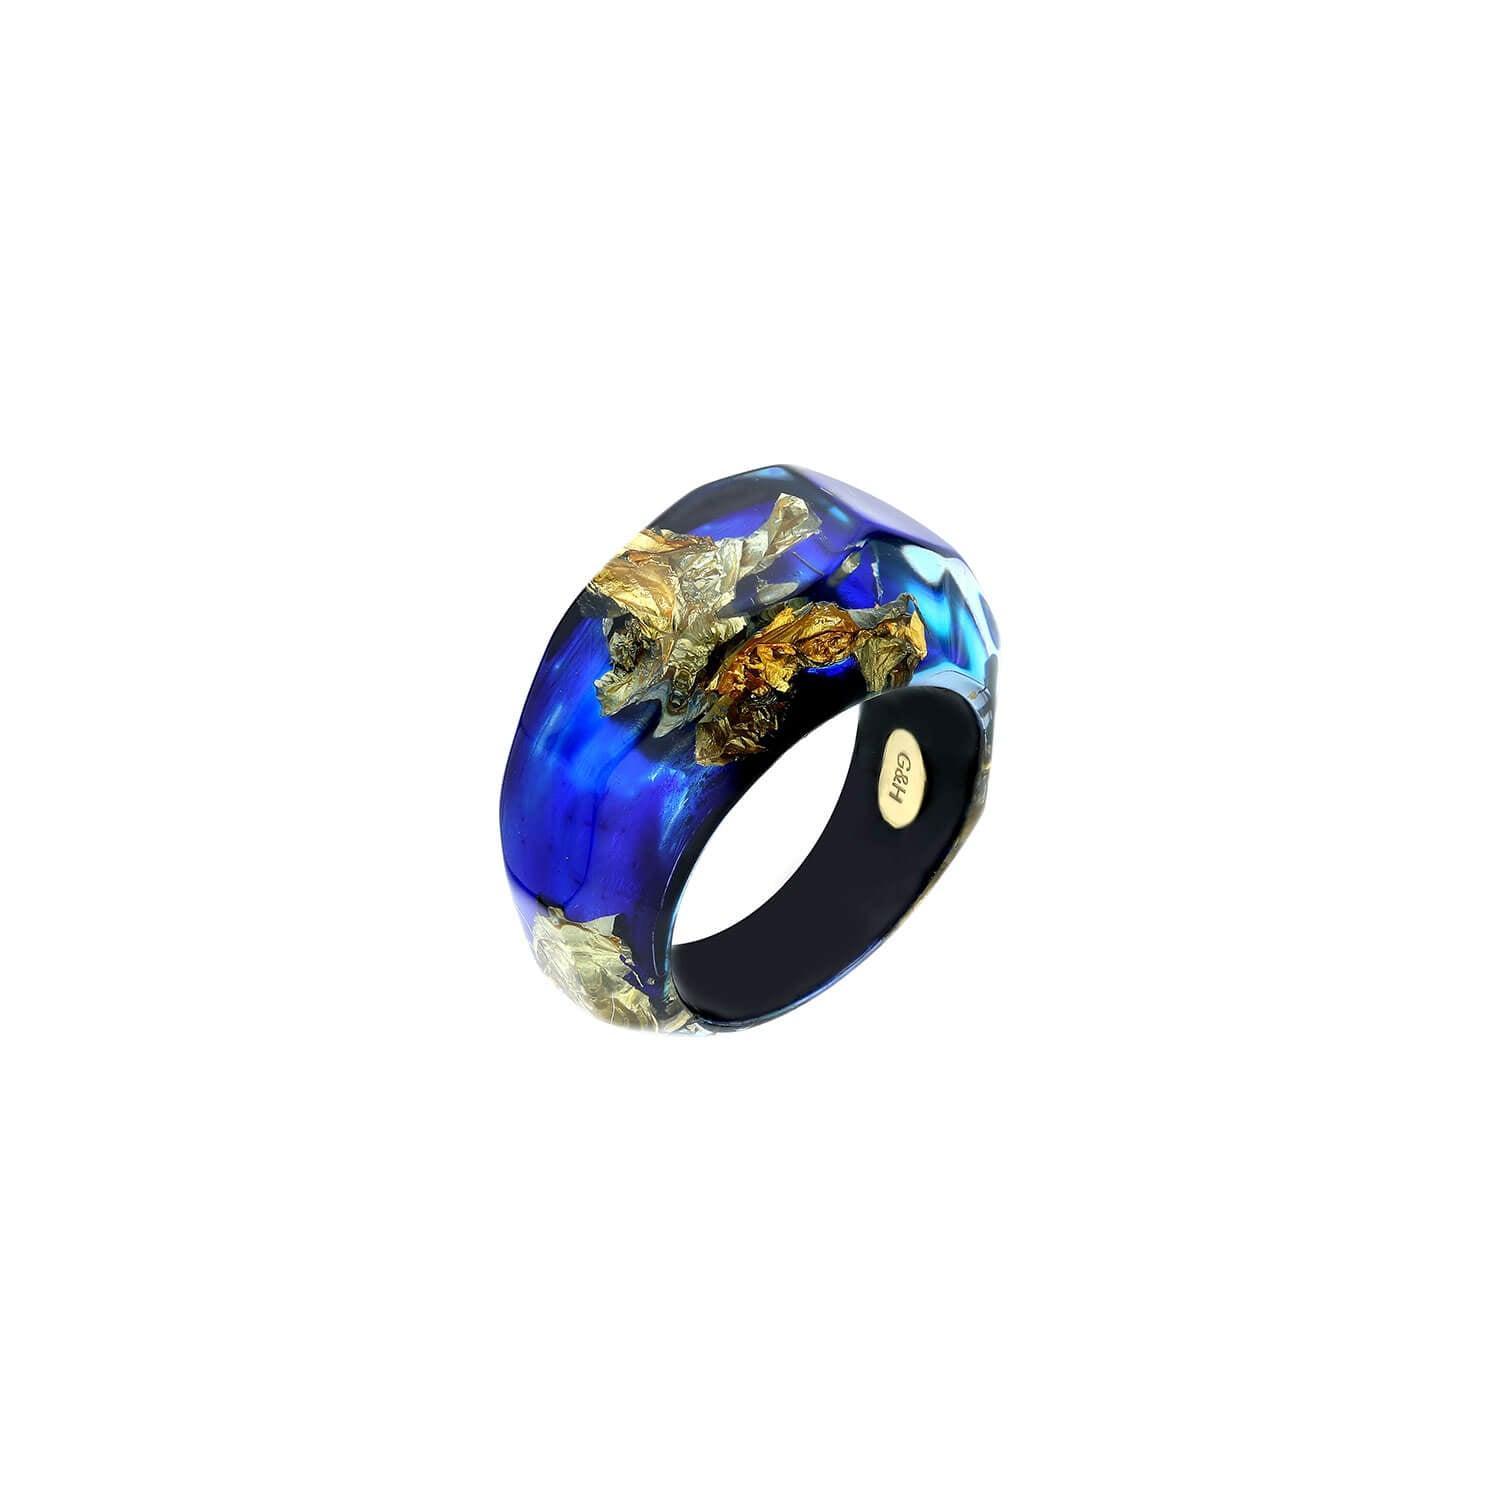 DEEP BLUE FACTED RING